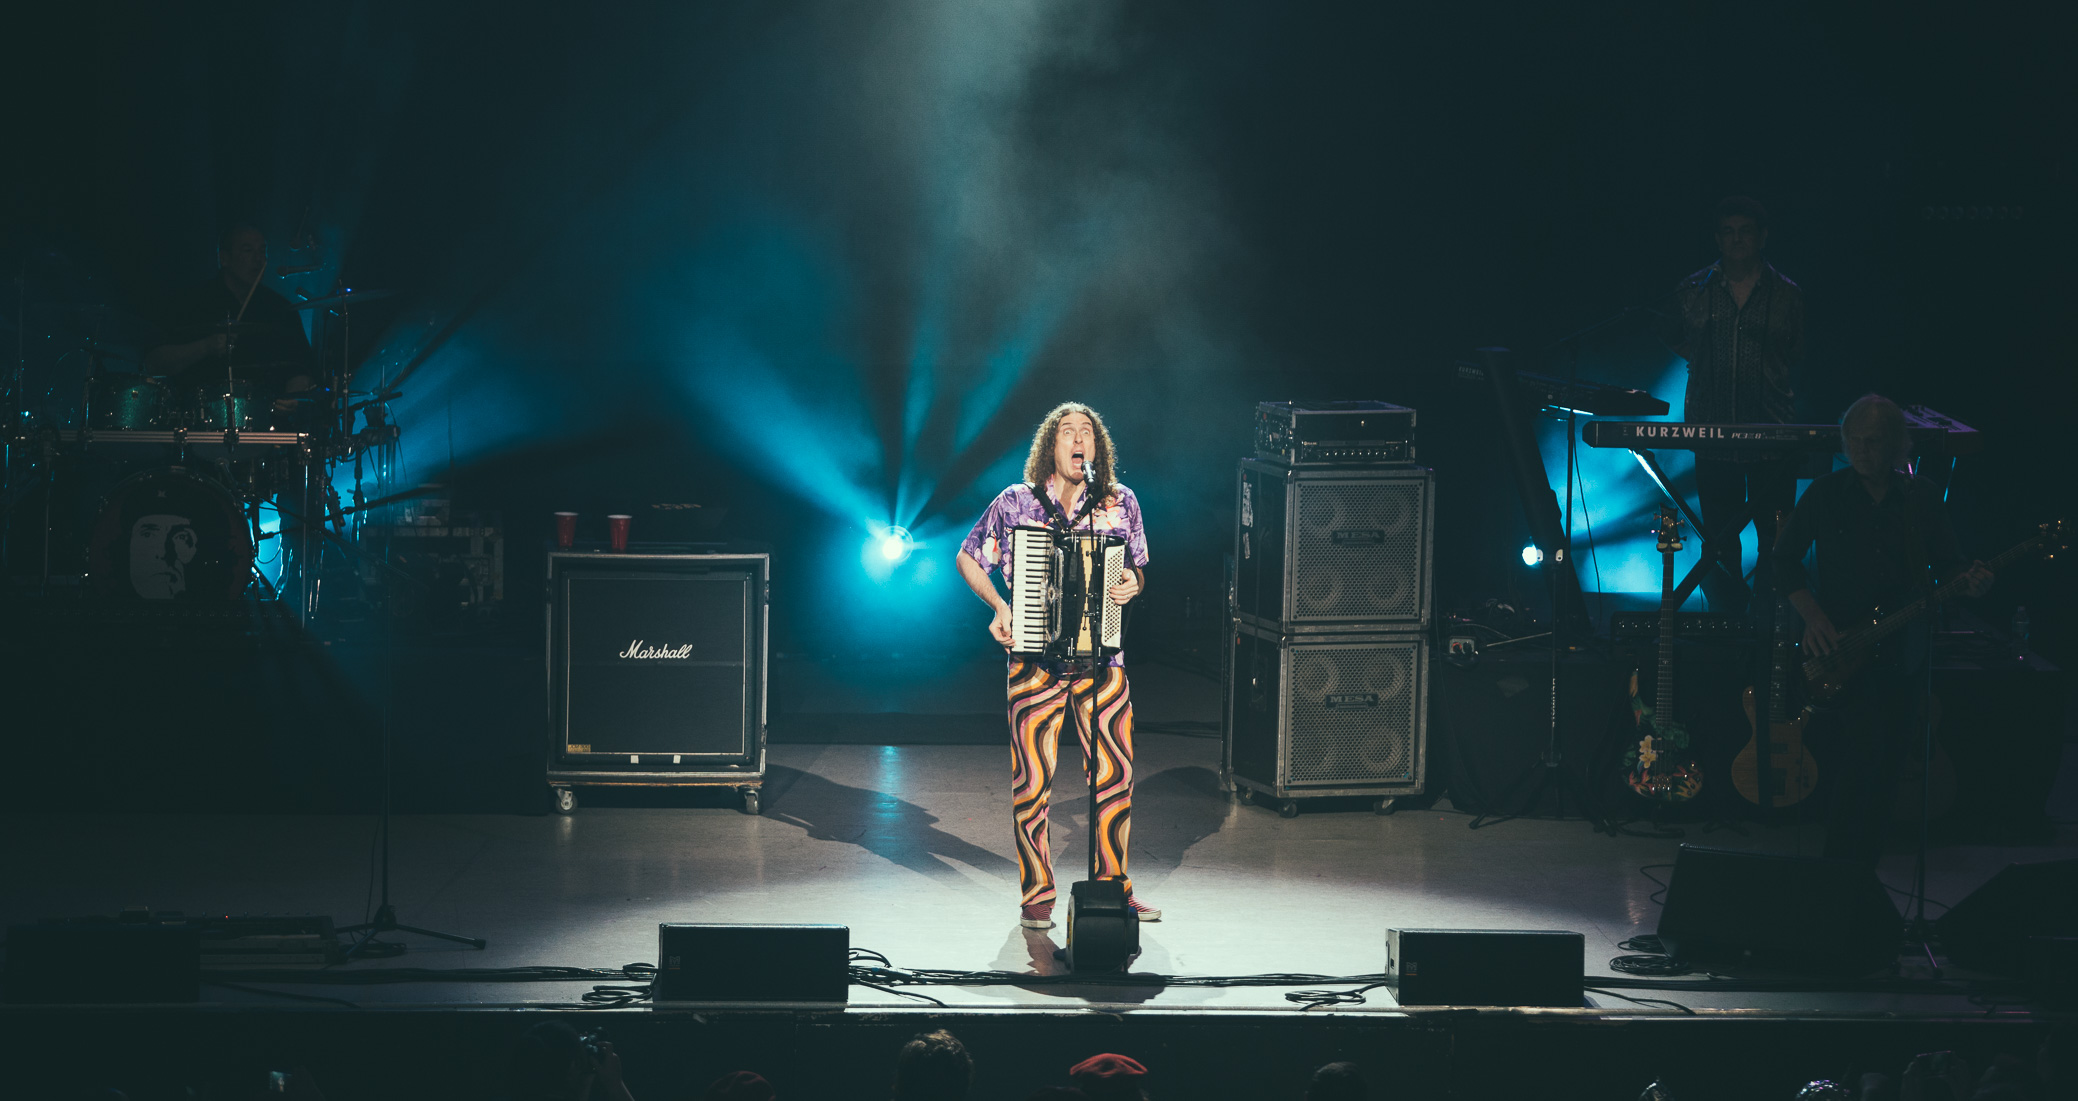 Weird Al Yankovic performs at the Birmingham-Jefferson Civic Center Concert Hall in Birmingham, Alabama on June 12th, 2016. (Photo by David A. Smith/DSmithScenes)